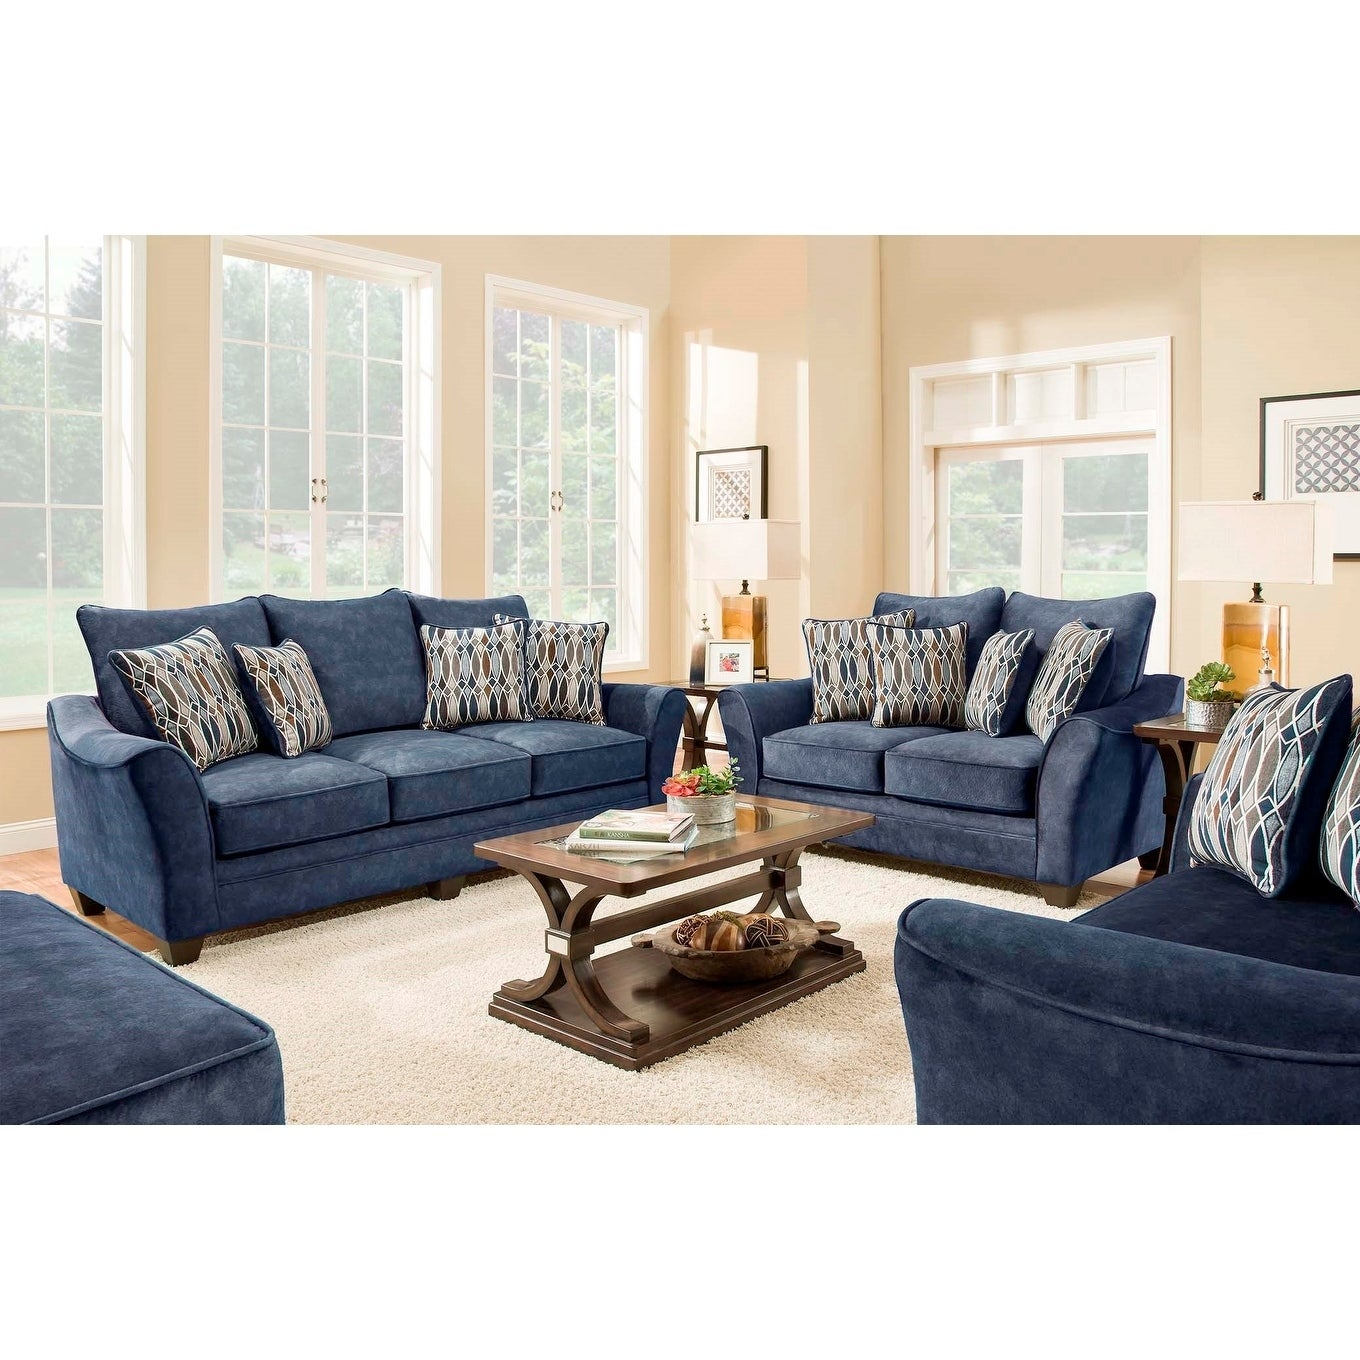 SofaTrendz Edmond Navy Blue Sofa & Loveseat 2-pc Set